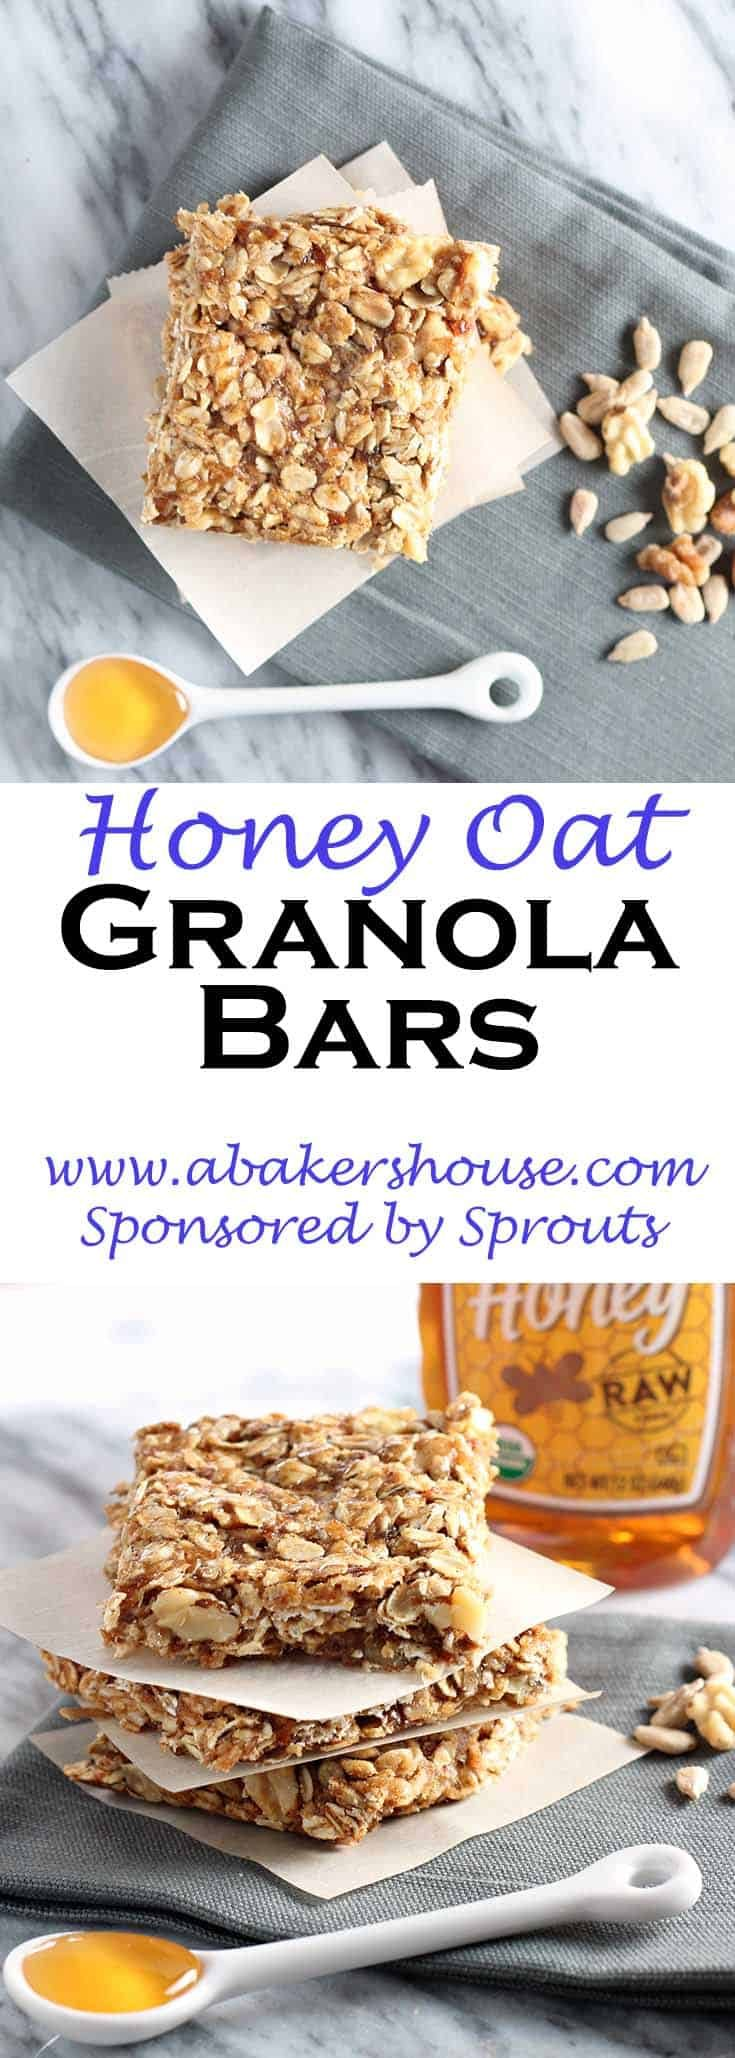 Honey Oat Granola bars combine quality ingredients into the ease of a granola bar. Granola bars come in all shapes and sizes and making them at home allows you to customize the ingredients. #sponsored #sprouts #abakershouse #granola #honey